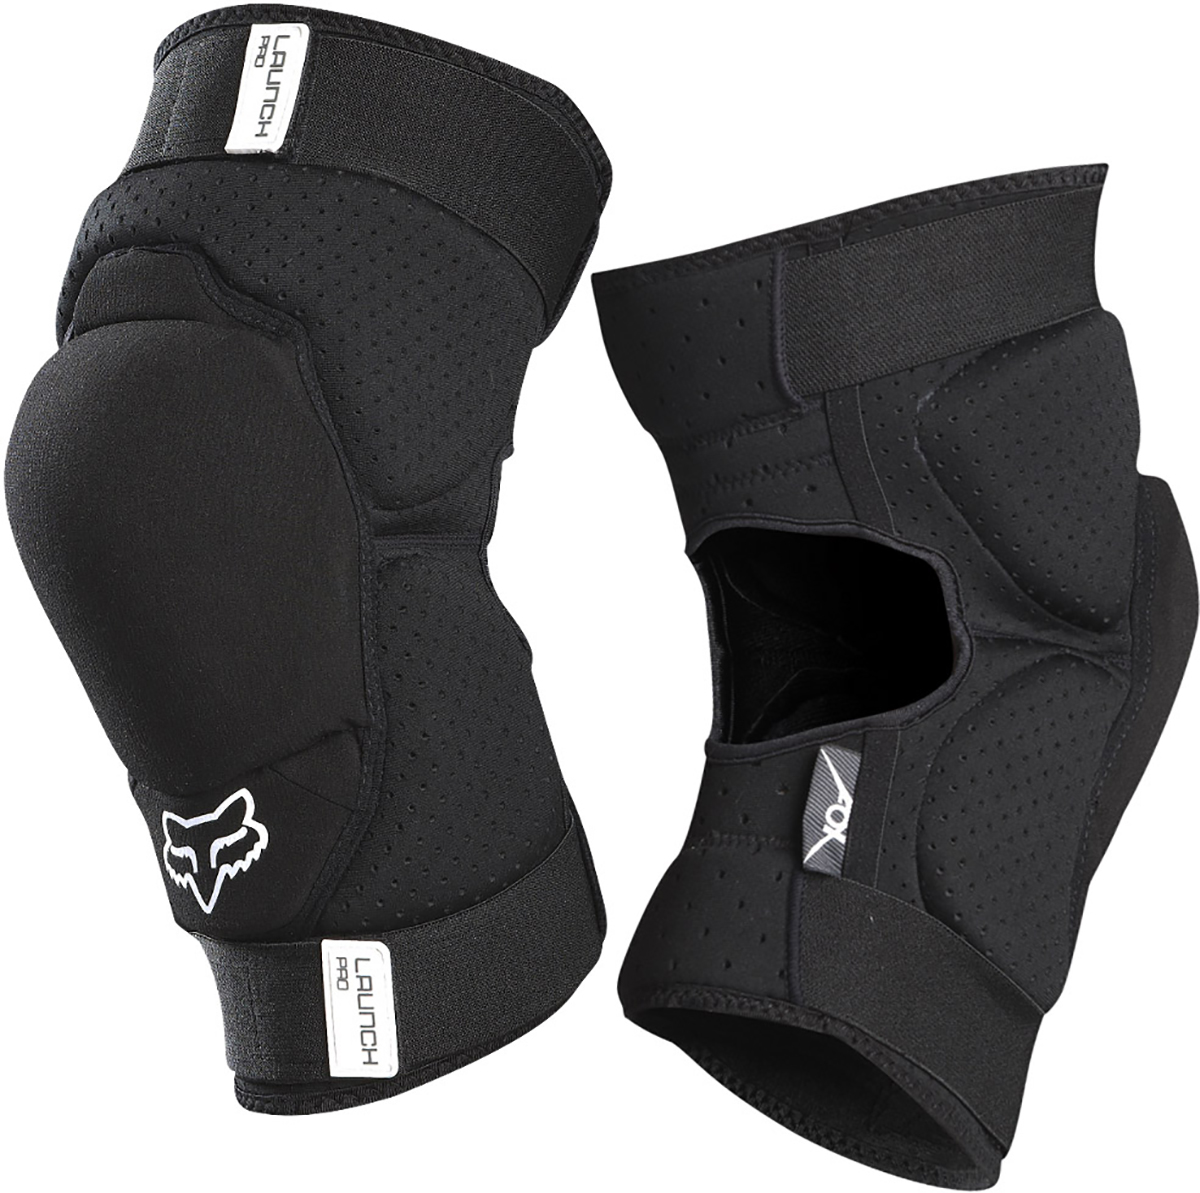 Fox Racing Launch Pro Youth Knee Guard | Amour